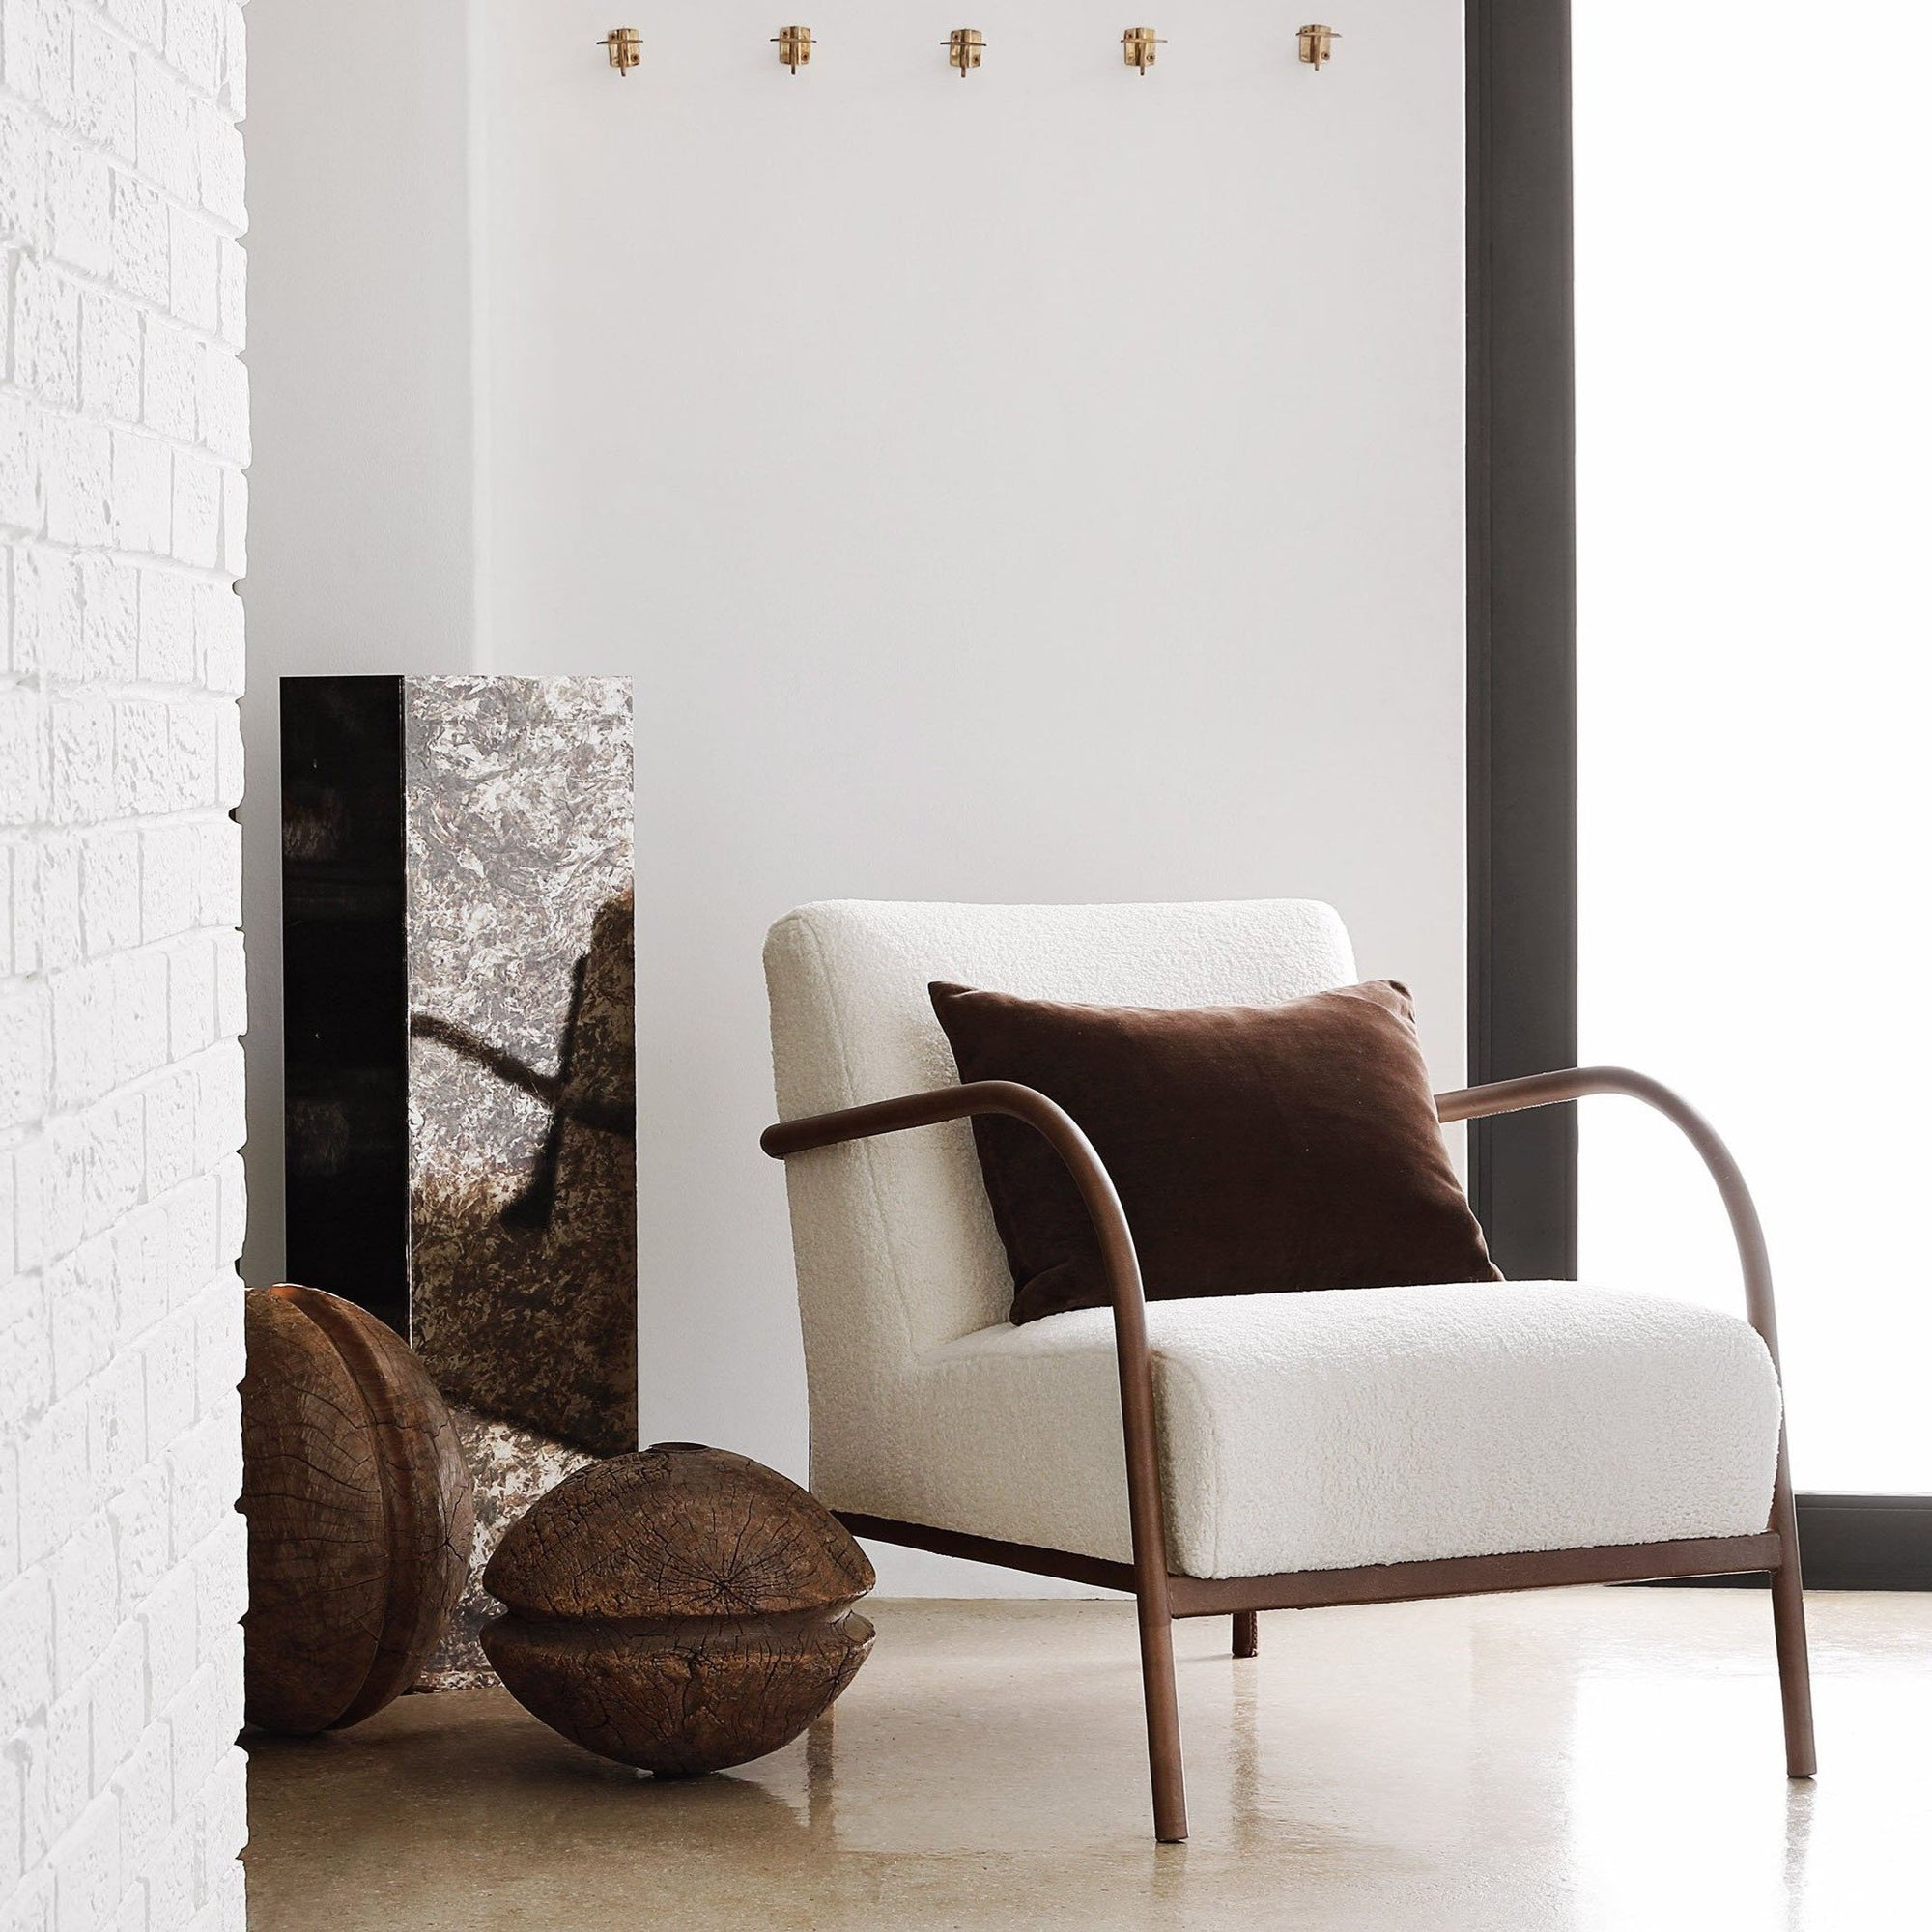 TEDDY CHAIR by Studio 19 at SARZA. armchair, Chairs, Furniture, Studio 19, Teddy Chair